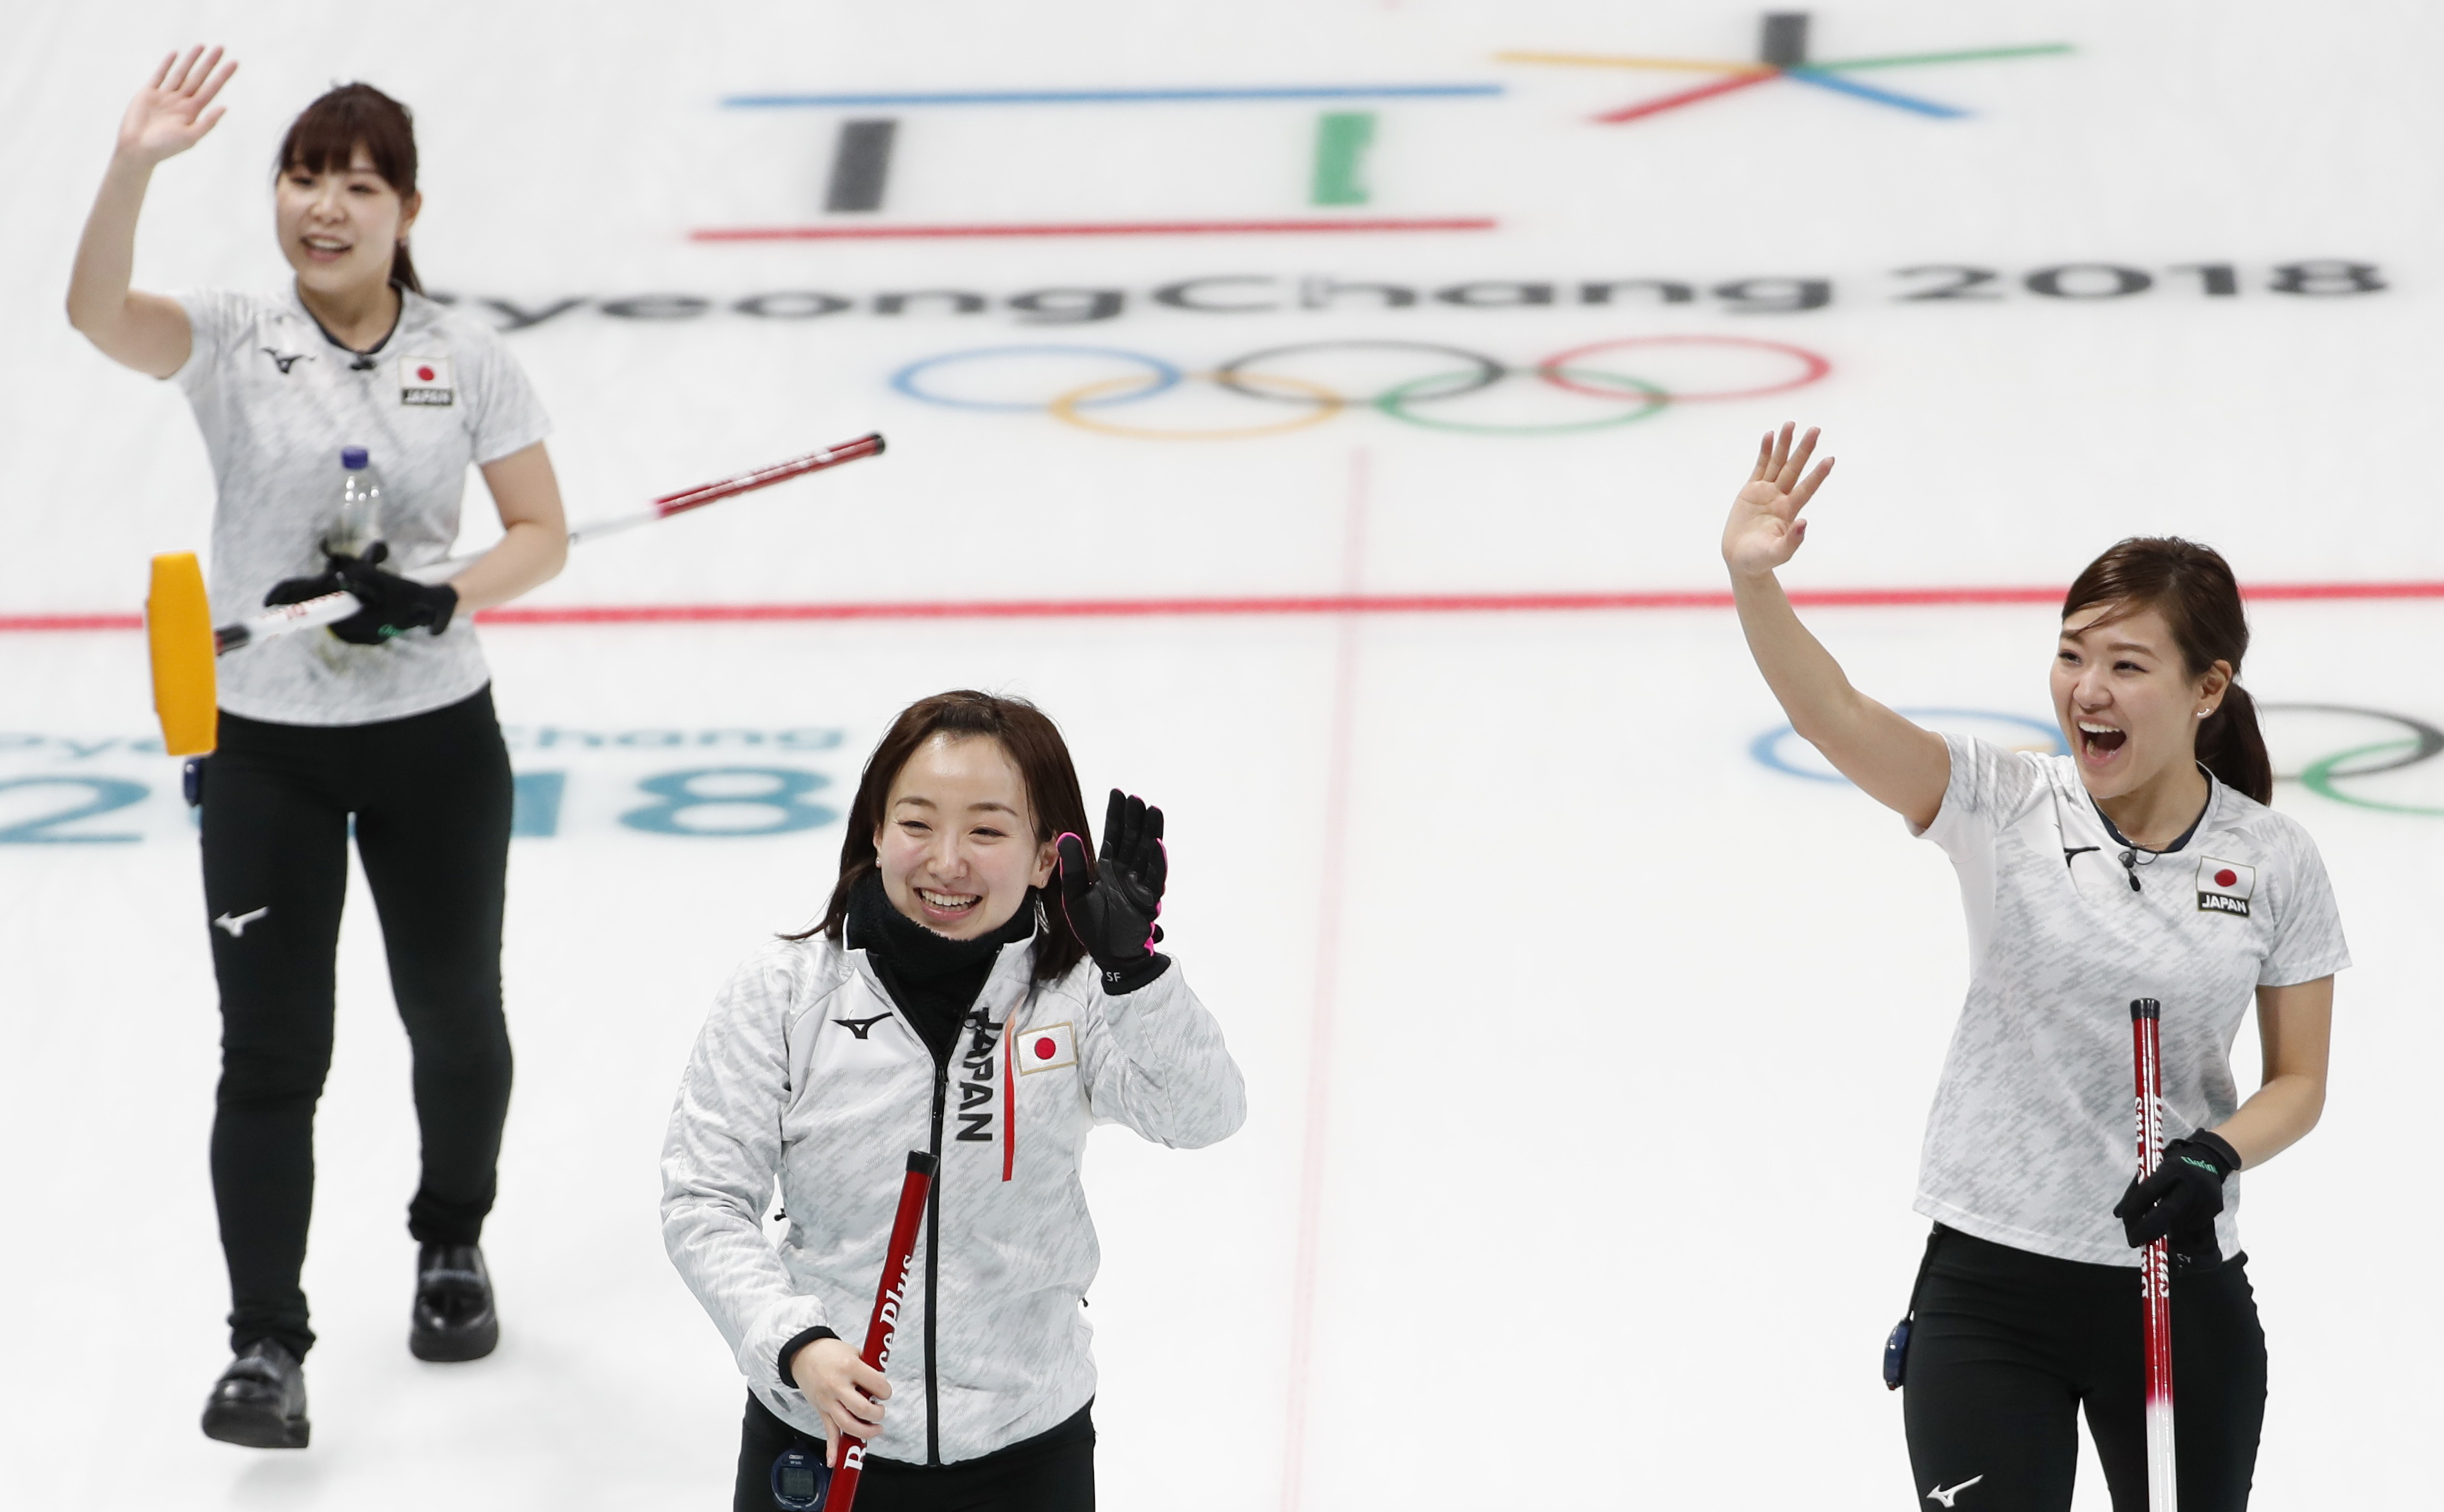 Curling - Pyeongchang 2018 Winter Olympics - Women Round Robin - Olympic Athletes from Russia v Japan - Gangneung Curling Center - Gangneung, South Korea - February 17, 2018 - Lead Yurika Yoshida, skip Satsuki Fujisawa and vice-skip Chinami Yoshida of Japan react after winning the game. REUTERS/Cathal McNaughton - DEVEE2H13H0BA